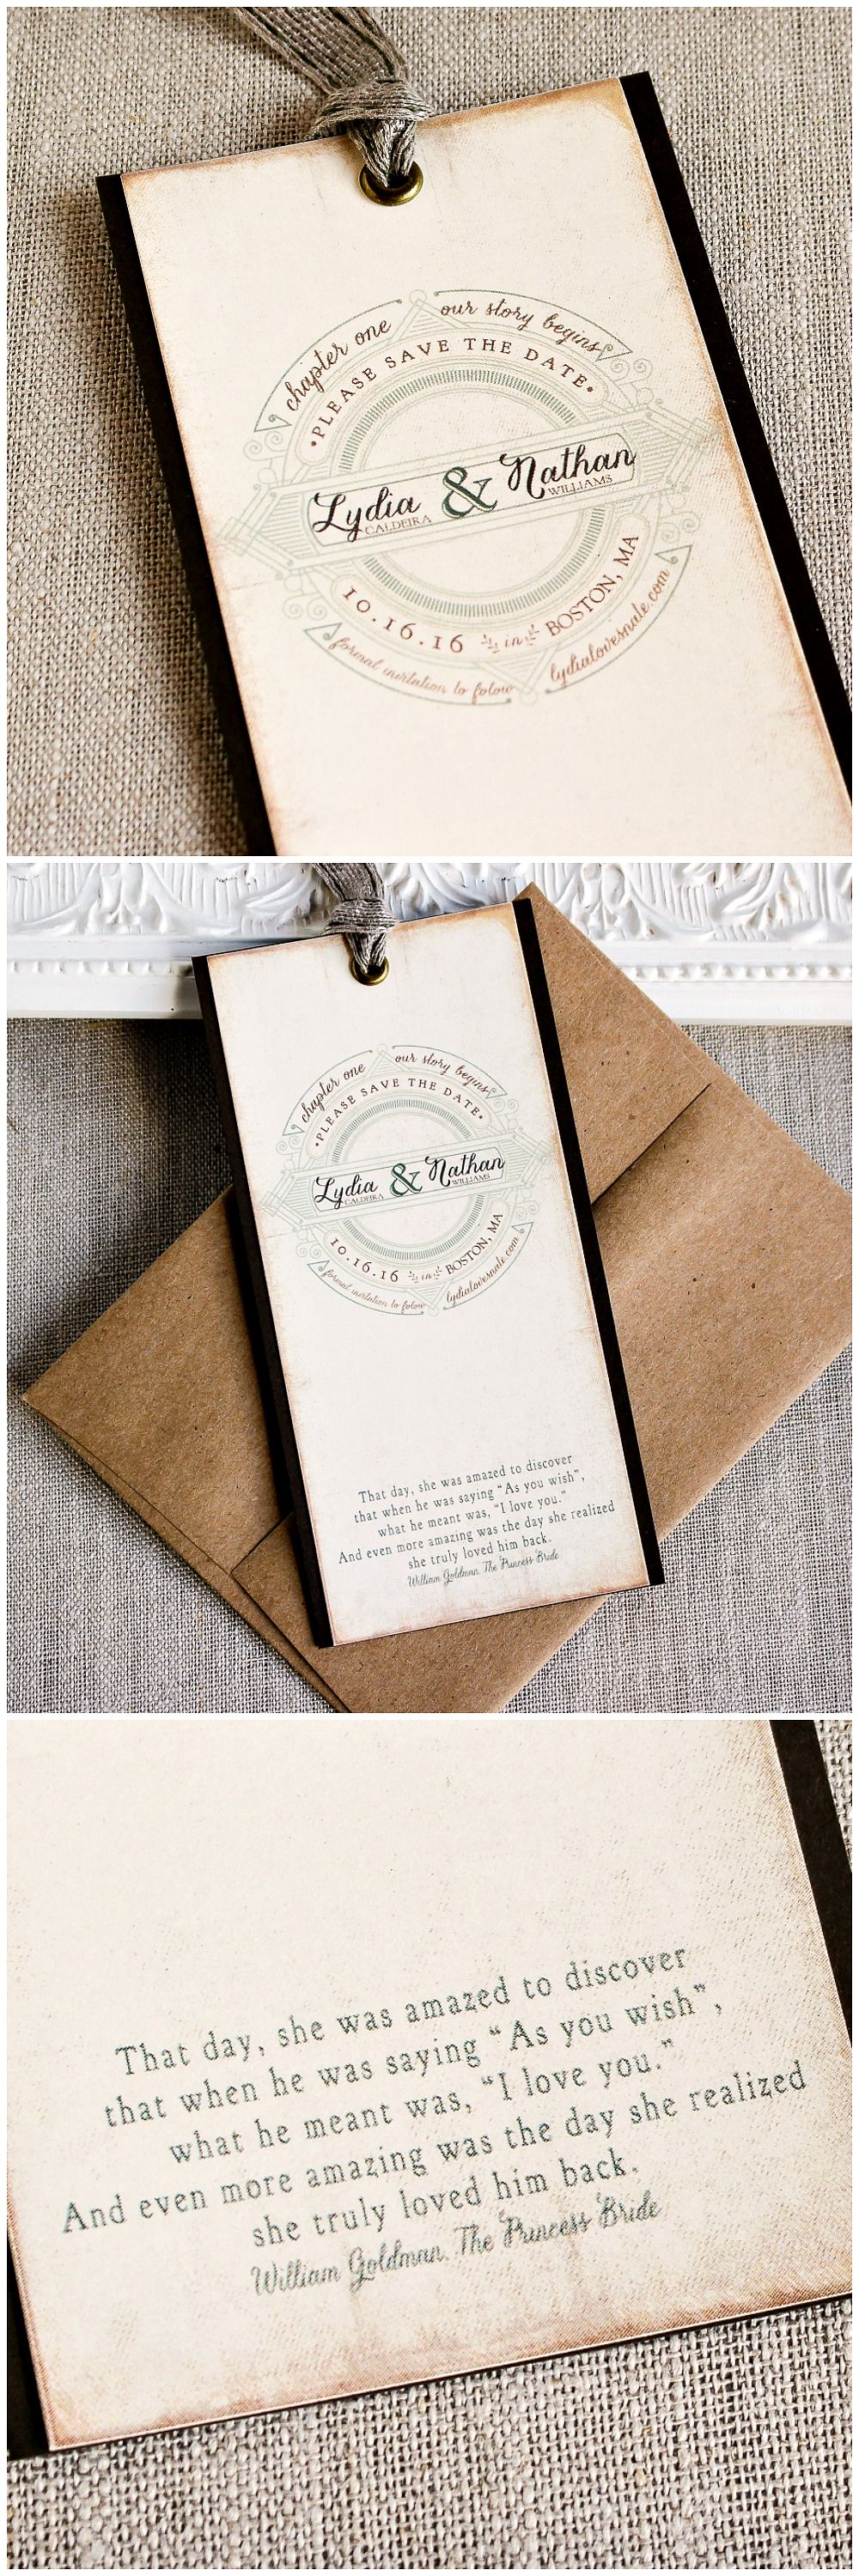 Save the Date Bookmark Vintage book The Princess Bride As You Wish Story Fairy tale wedding Library